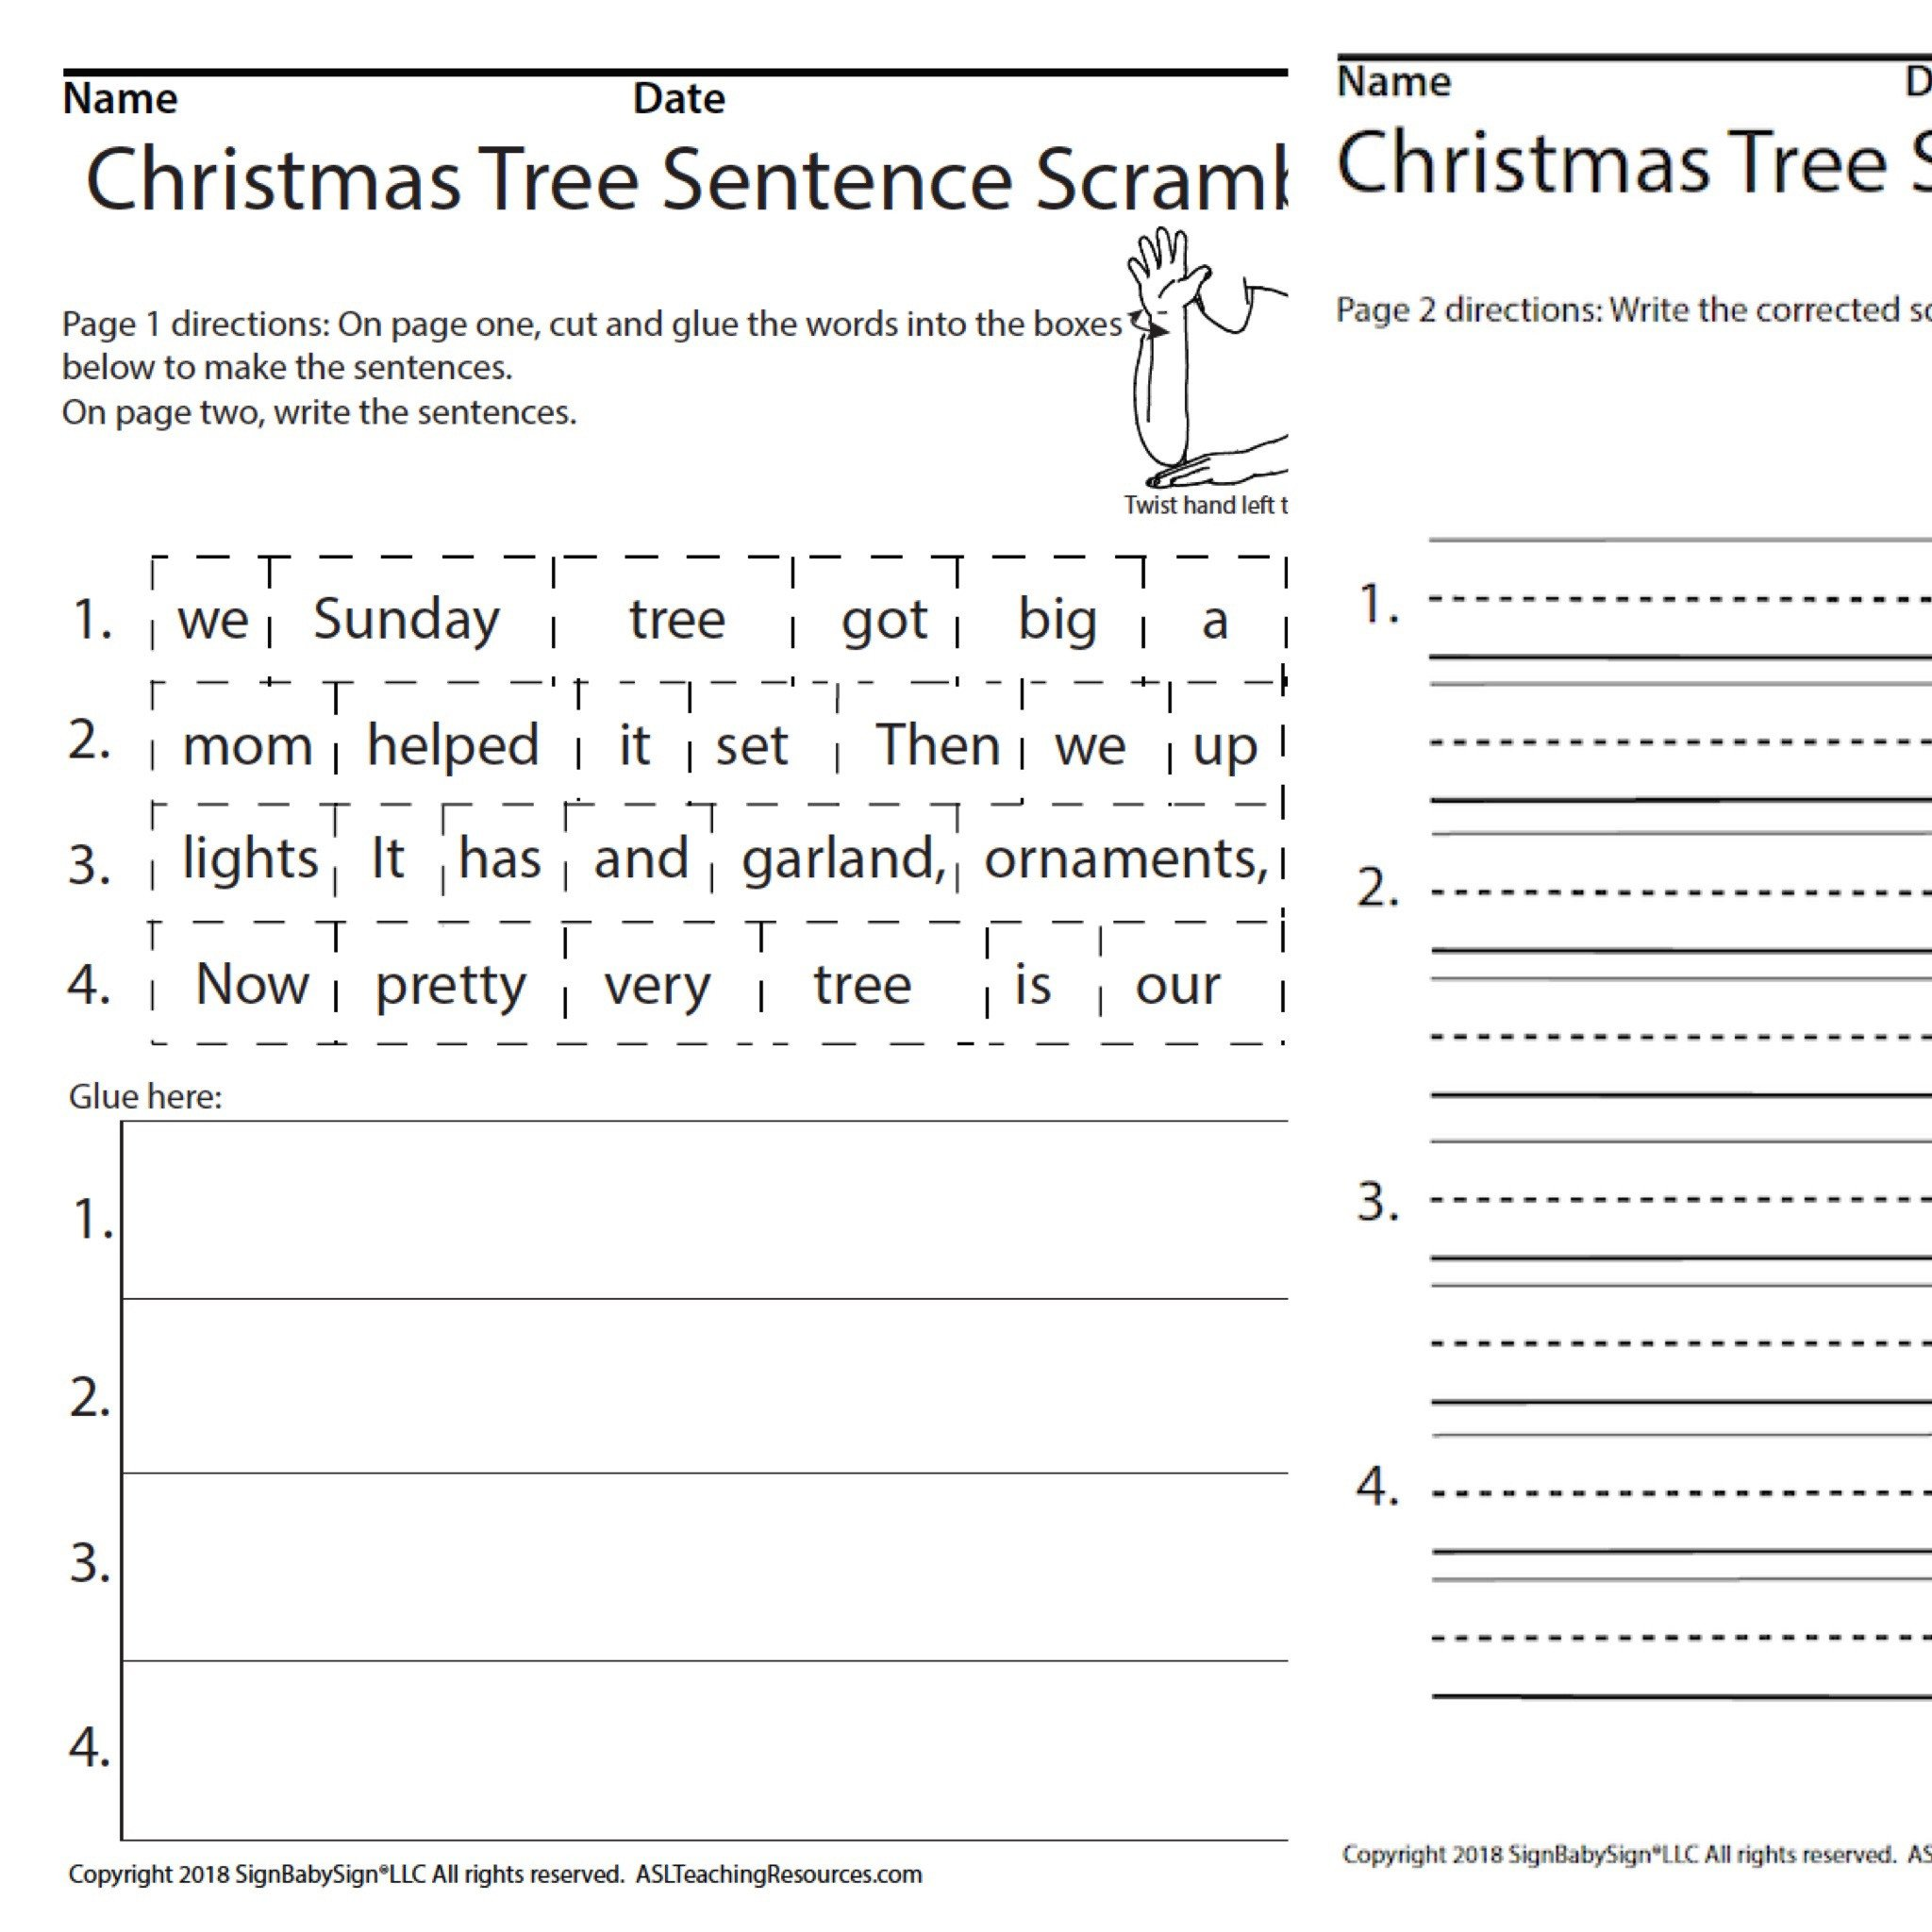 Scrambled Sentences Worksheets 2nd Grade Christmas Tree Scrambled Sentences